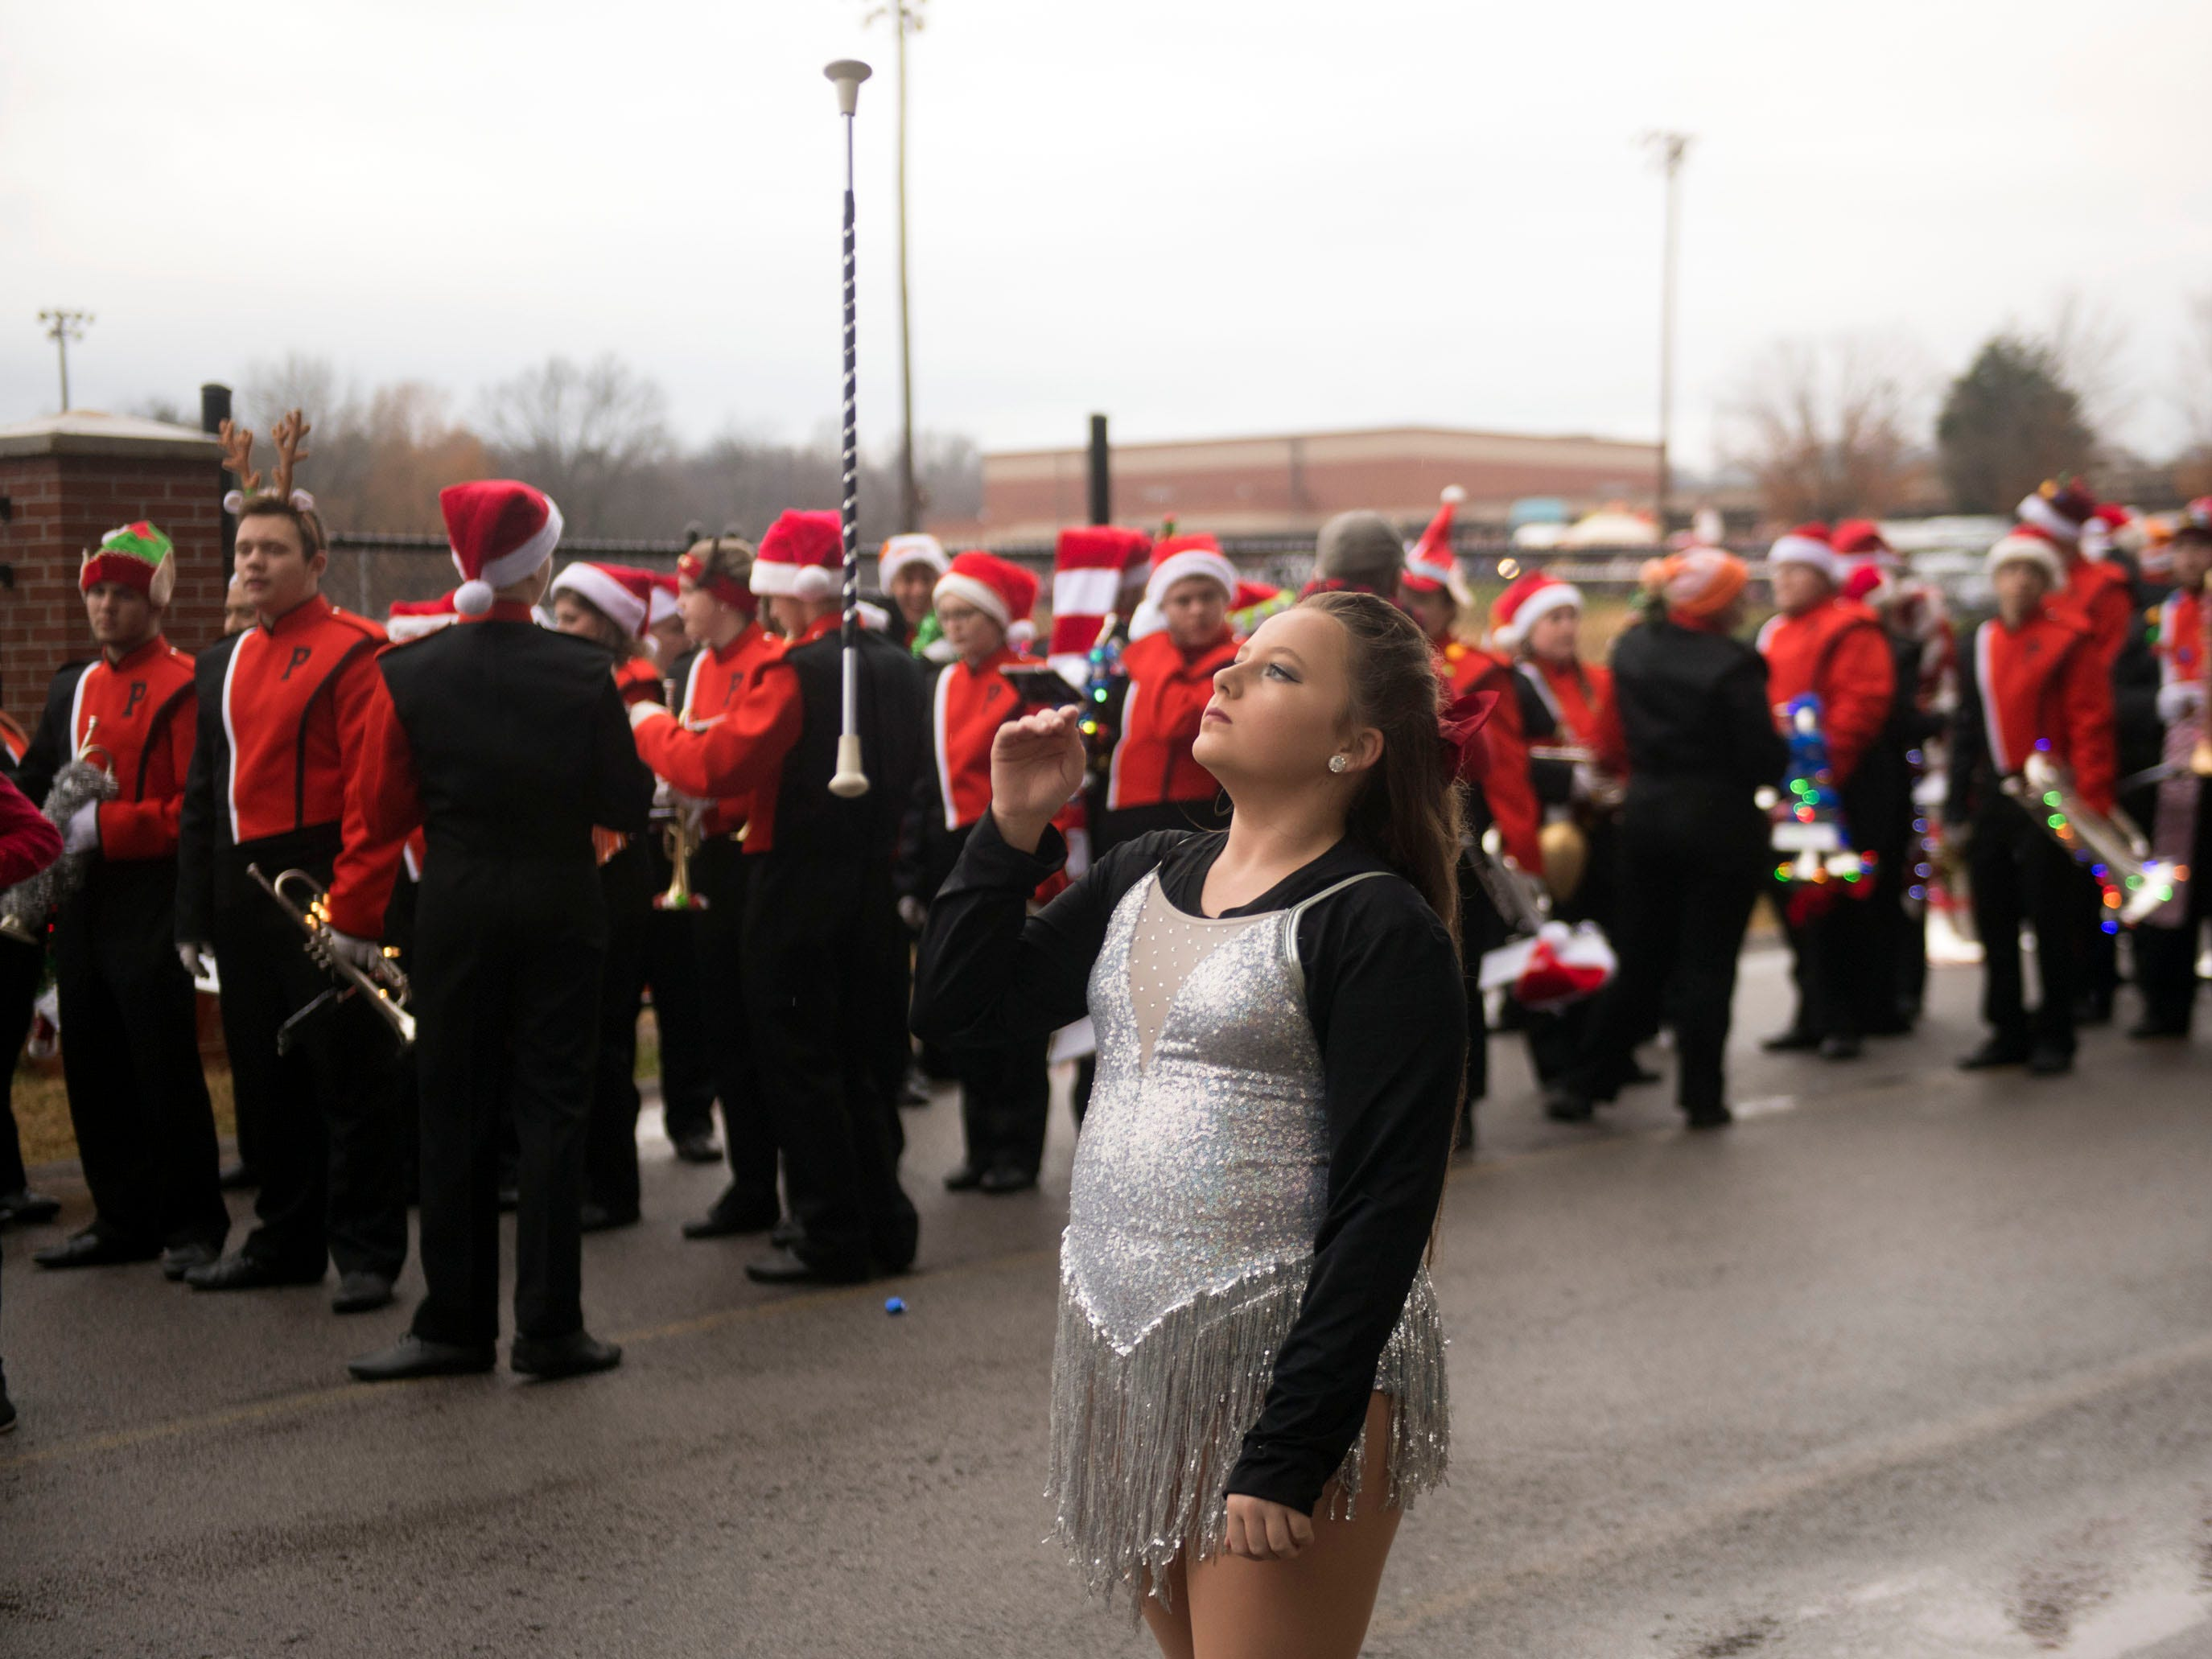 Felicia Hawk of the Powell High School Marching Panther Band warms up before the start of the Powell Lions Club Christmas Parade on Saturday, December 1, 2018.